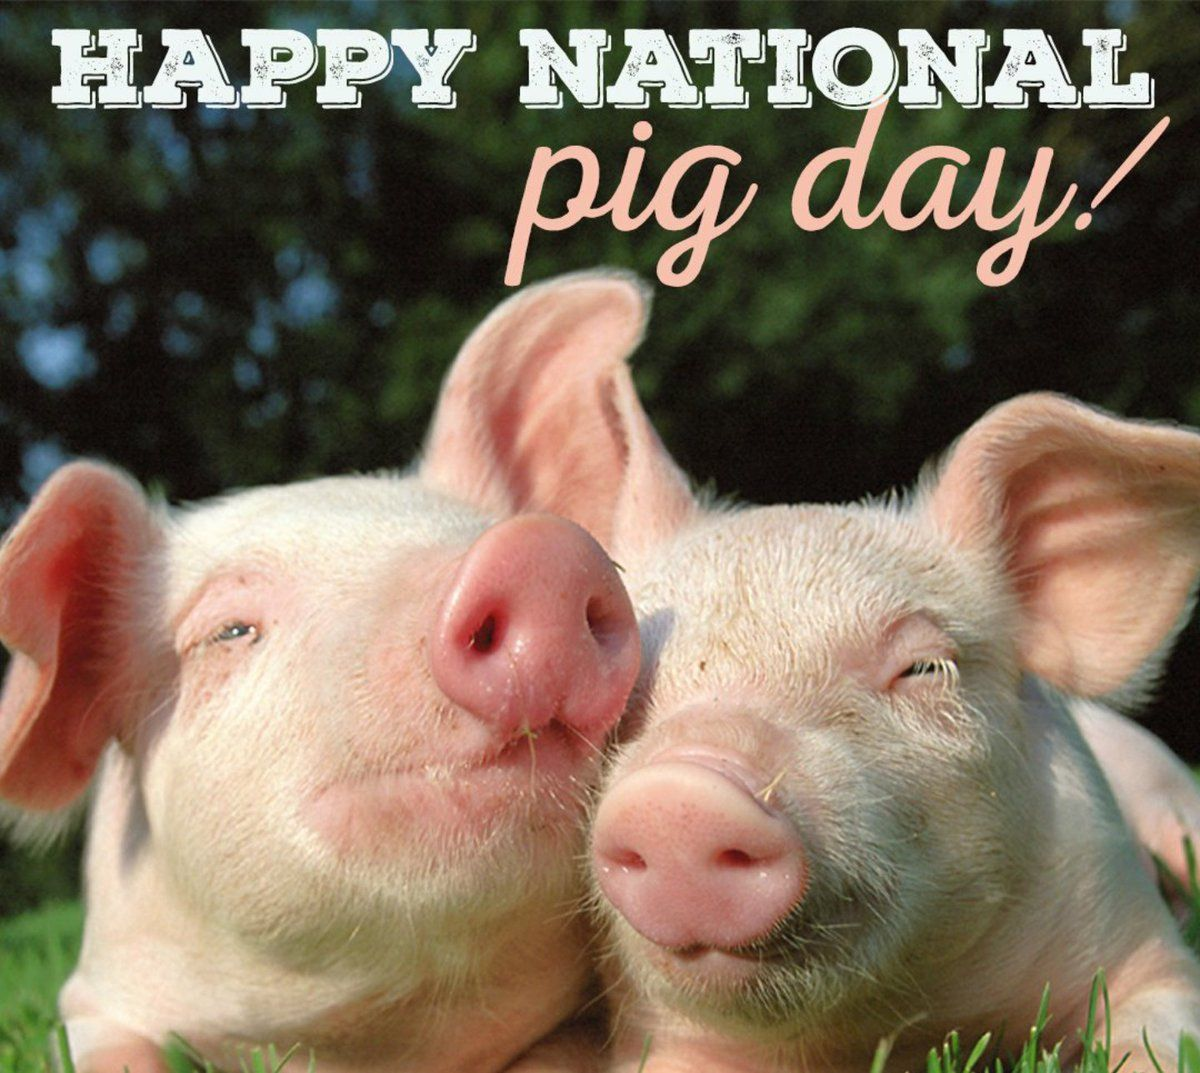 NationalPigDay hashtag on Twitter Pig farming, Pig